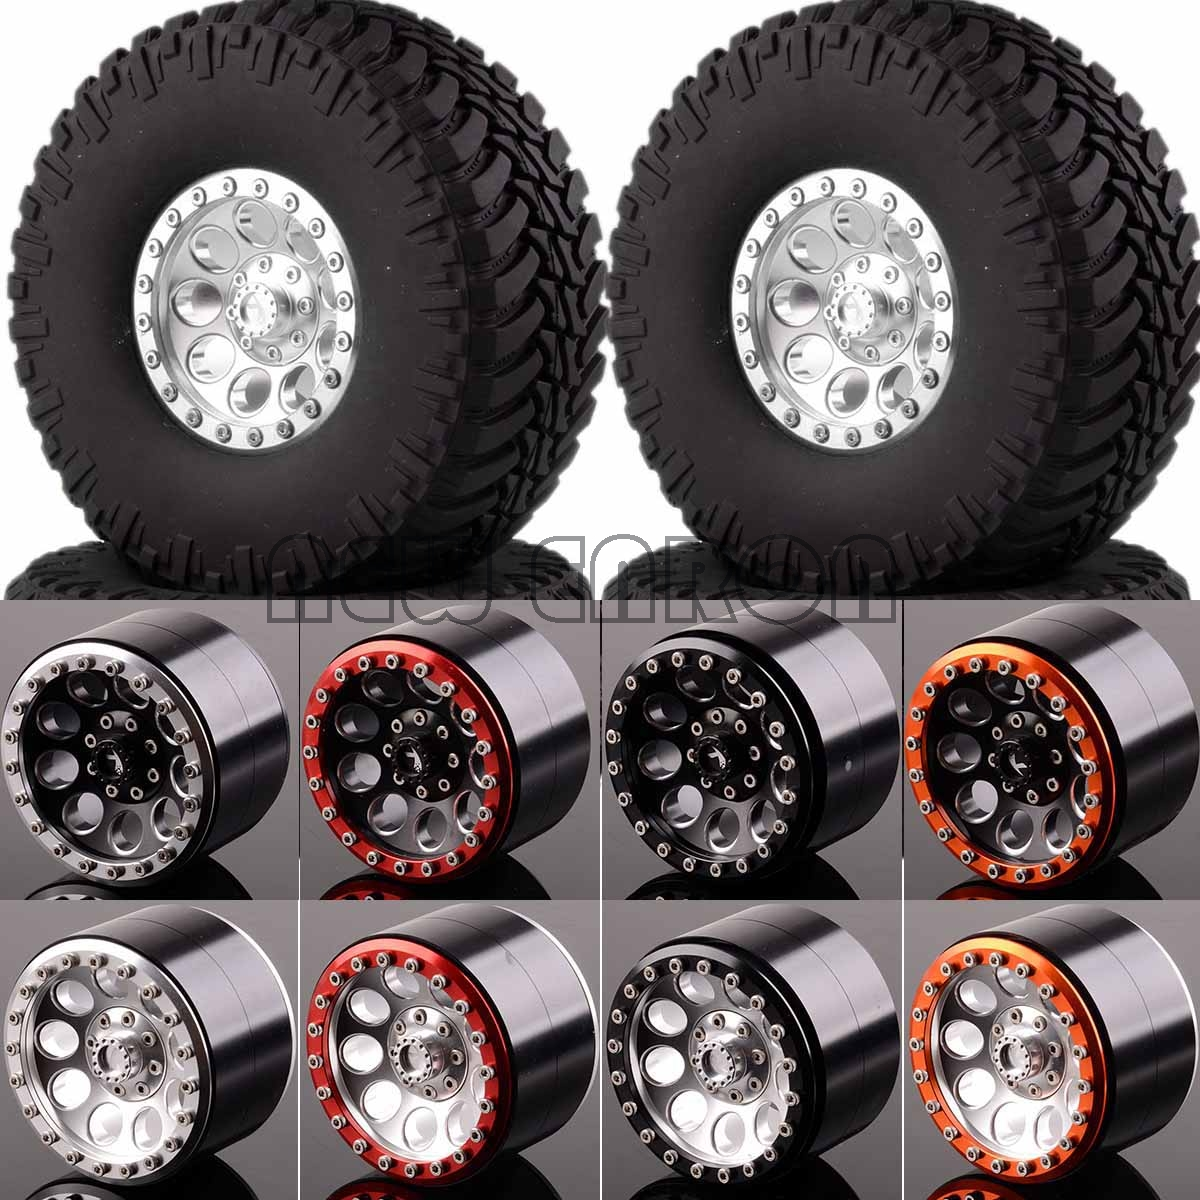 NEW ENRON 2.2 Beadlock Wheels & Tires 2020-3033 FOR 1/10 Crawler AXIAL Traxxas Tamiya HPI mxfans rc 1 10 2 2 crawler car inflatable tires black alloy beadlock pack of 4